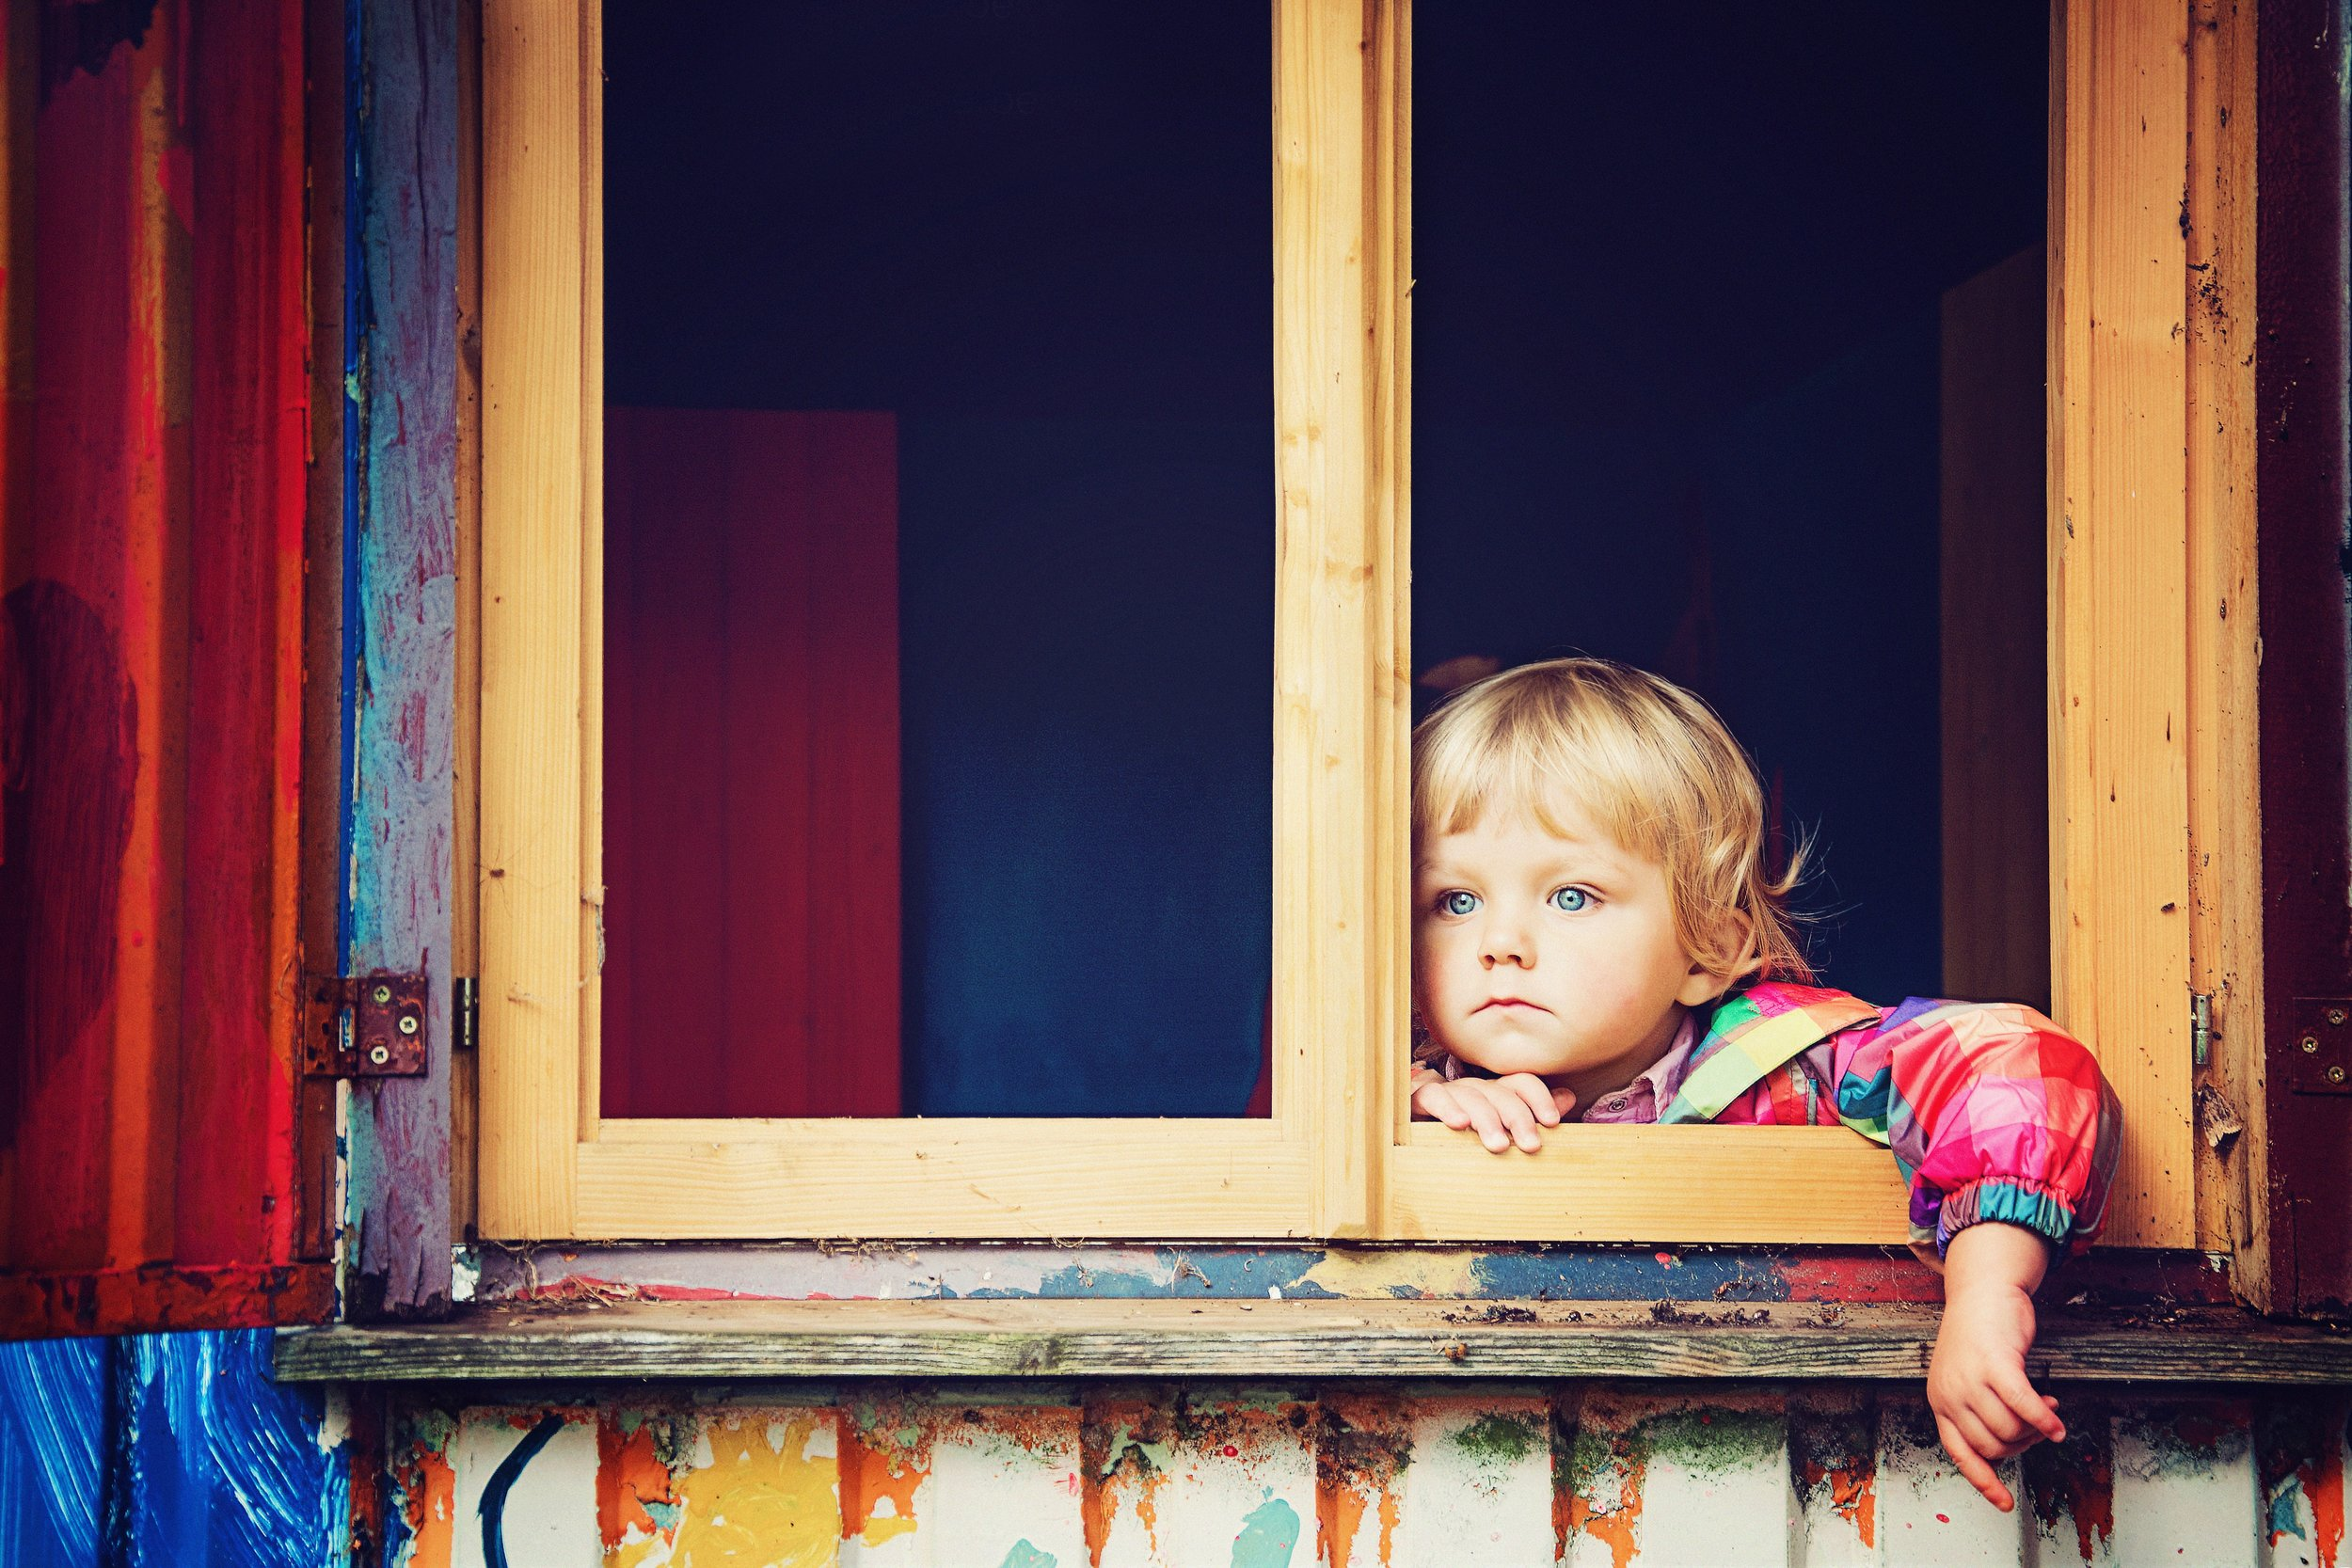 anxious OCD child with distant expression looking out window of house